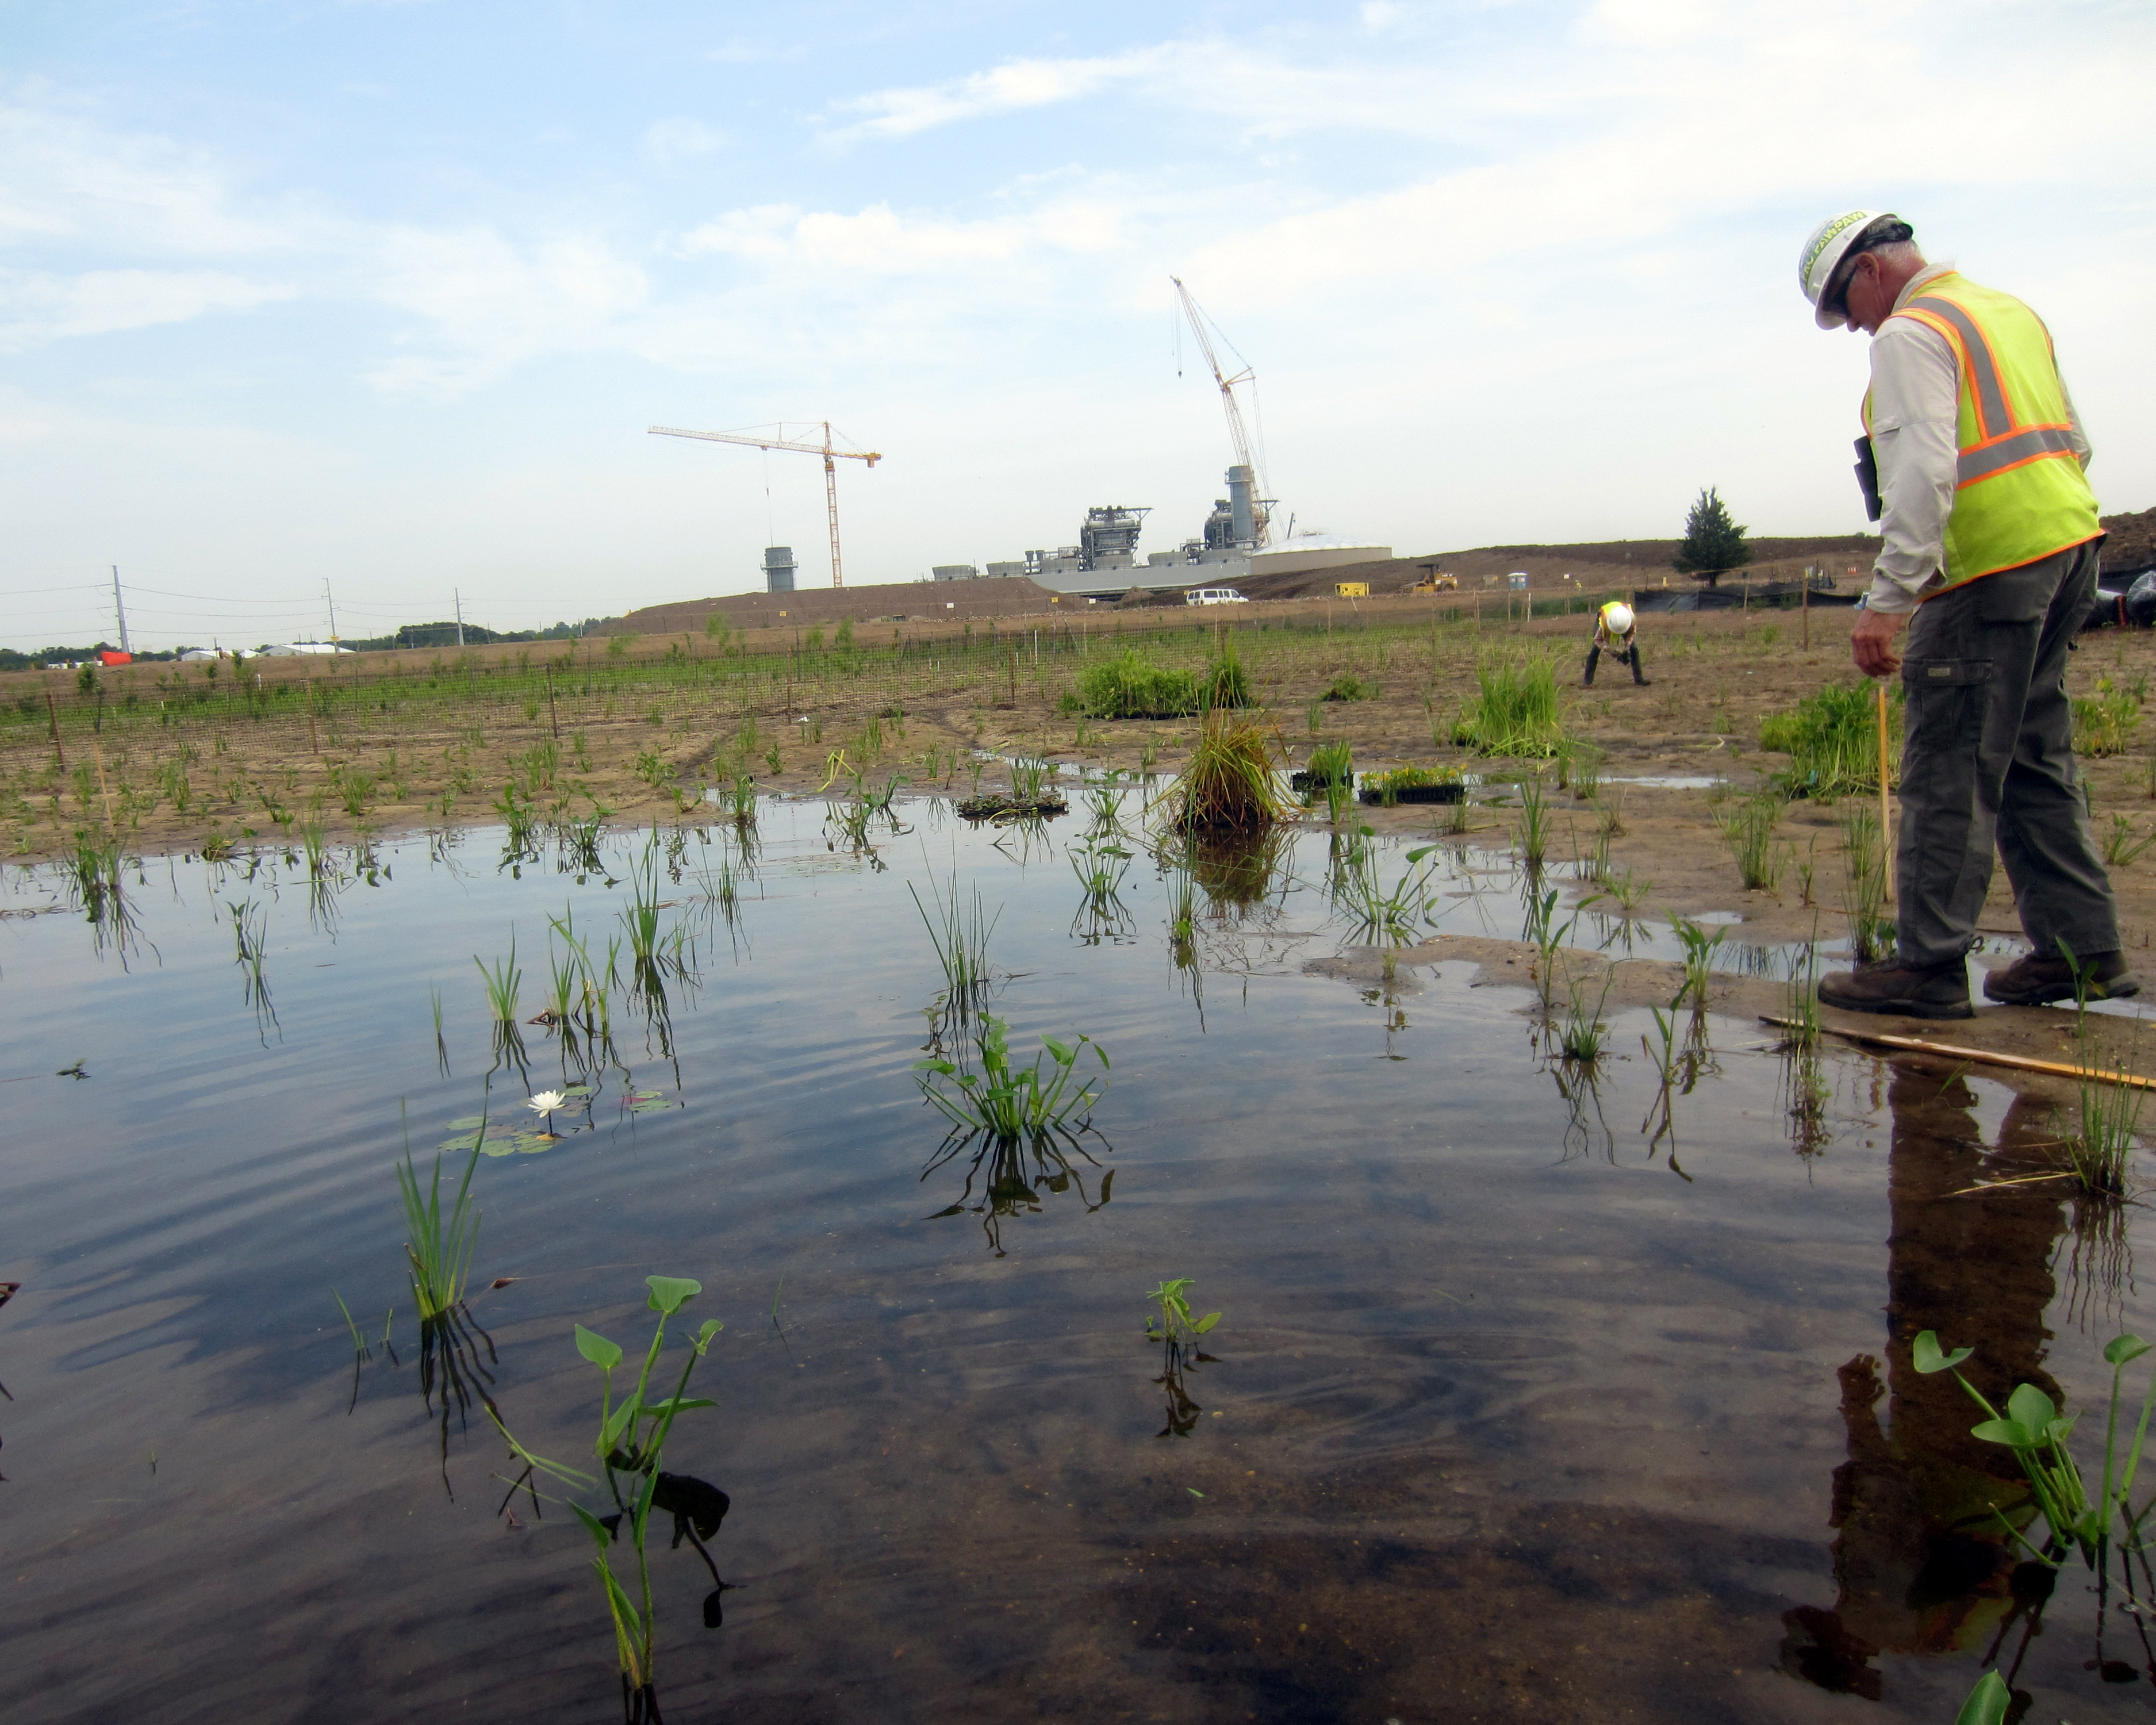 photo showing two men in high visibility vests planting plants in a wetland